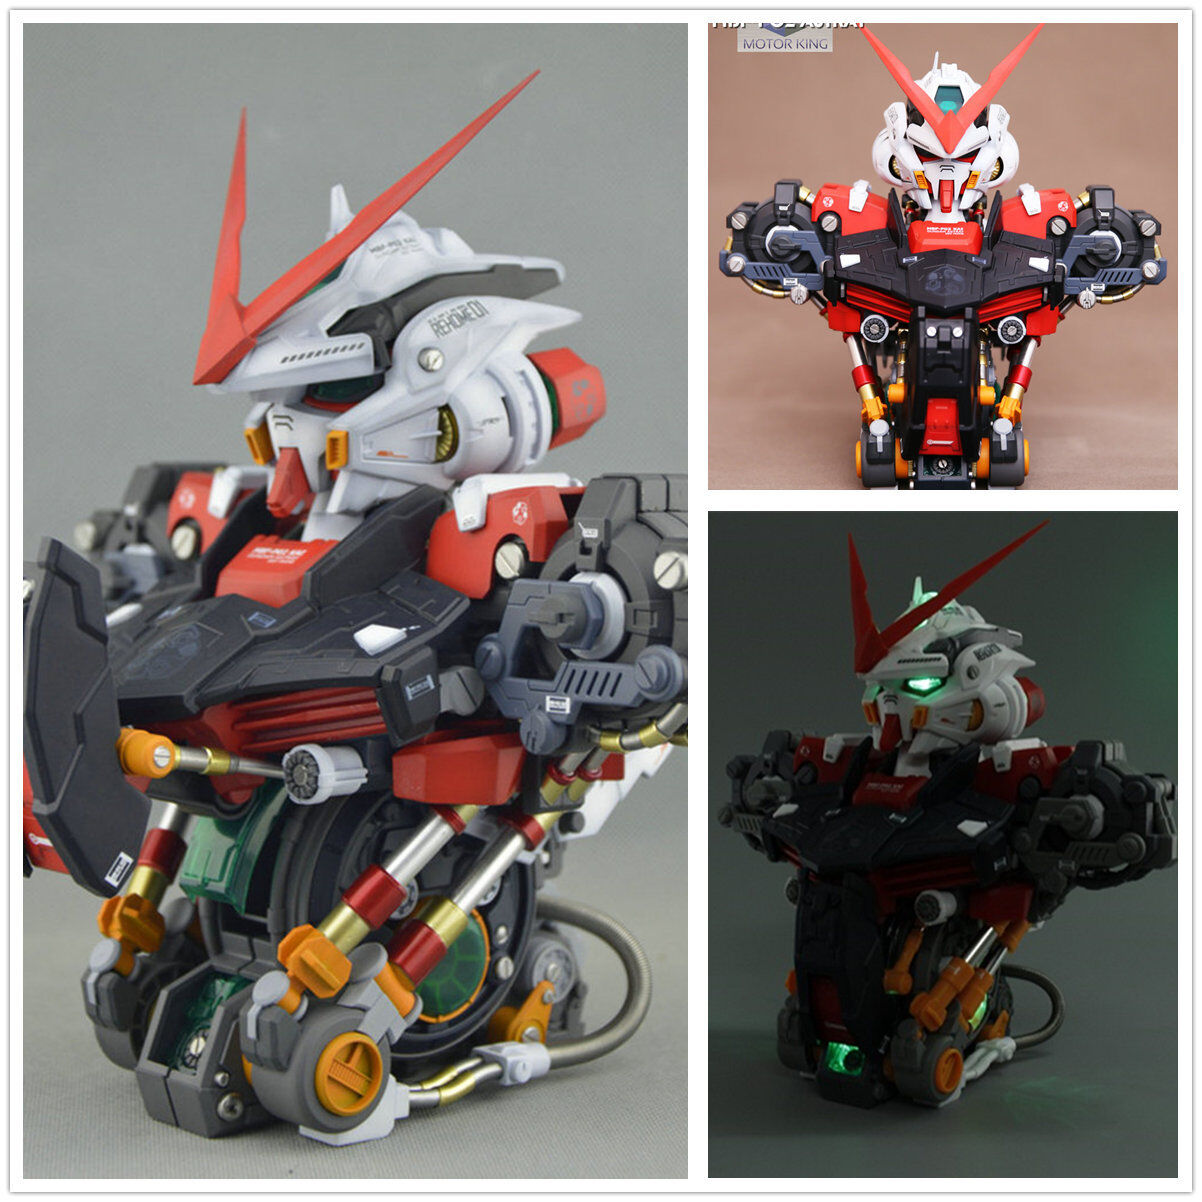 Led You Astray Details About Mk Motorking Model 1 35 Mbf P02 Astray Red Frame Gundam Bust Head With Led